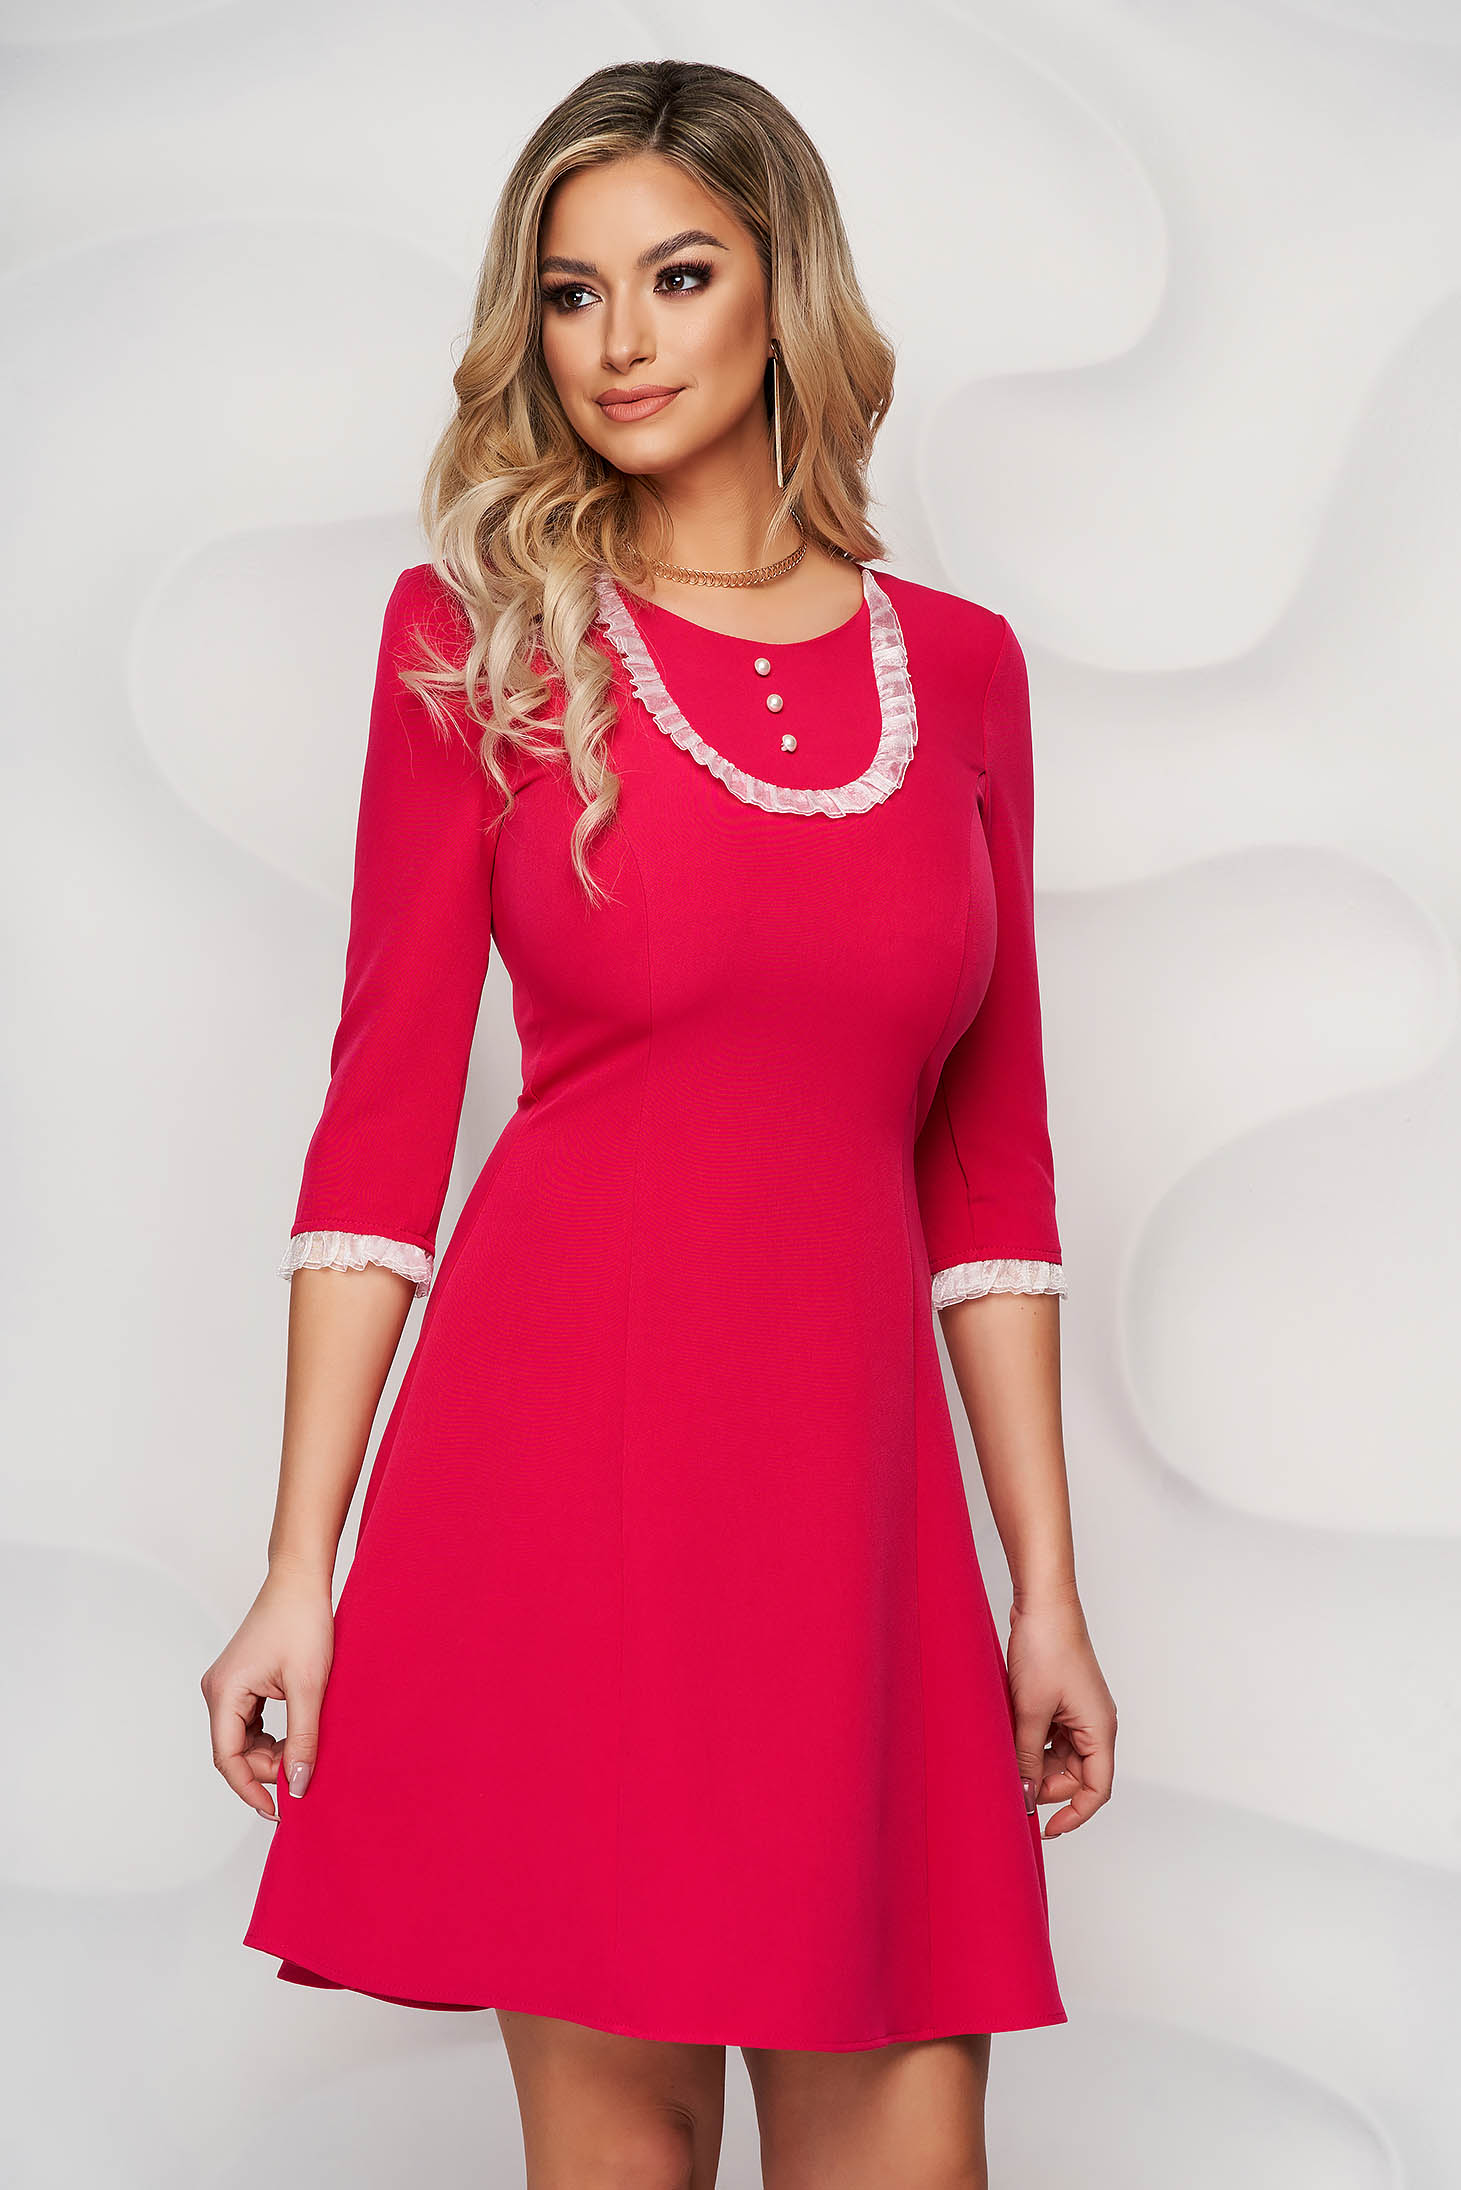 Dress StarShinerS raspberry elegant short cut with lace details cloth